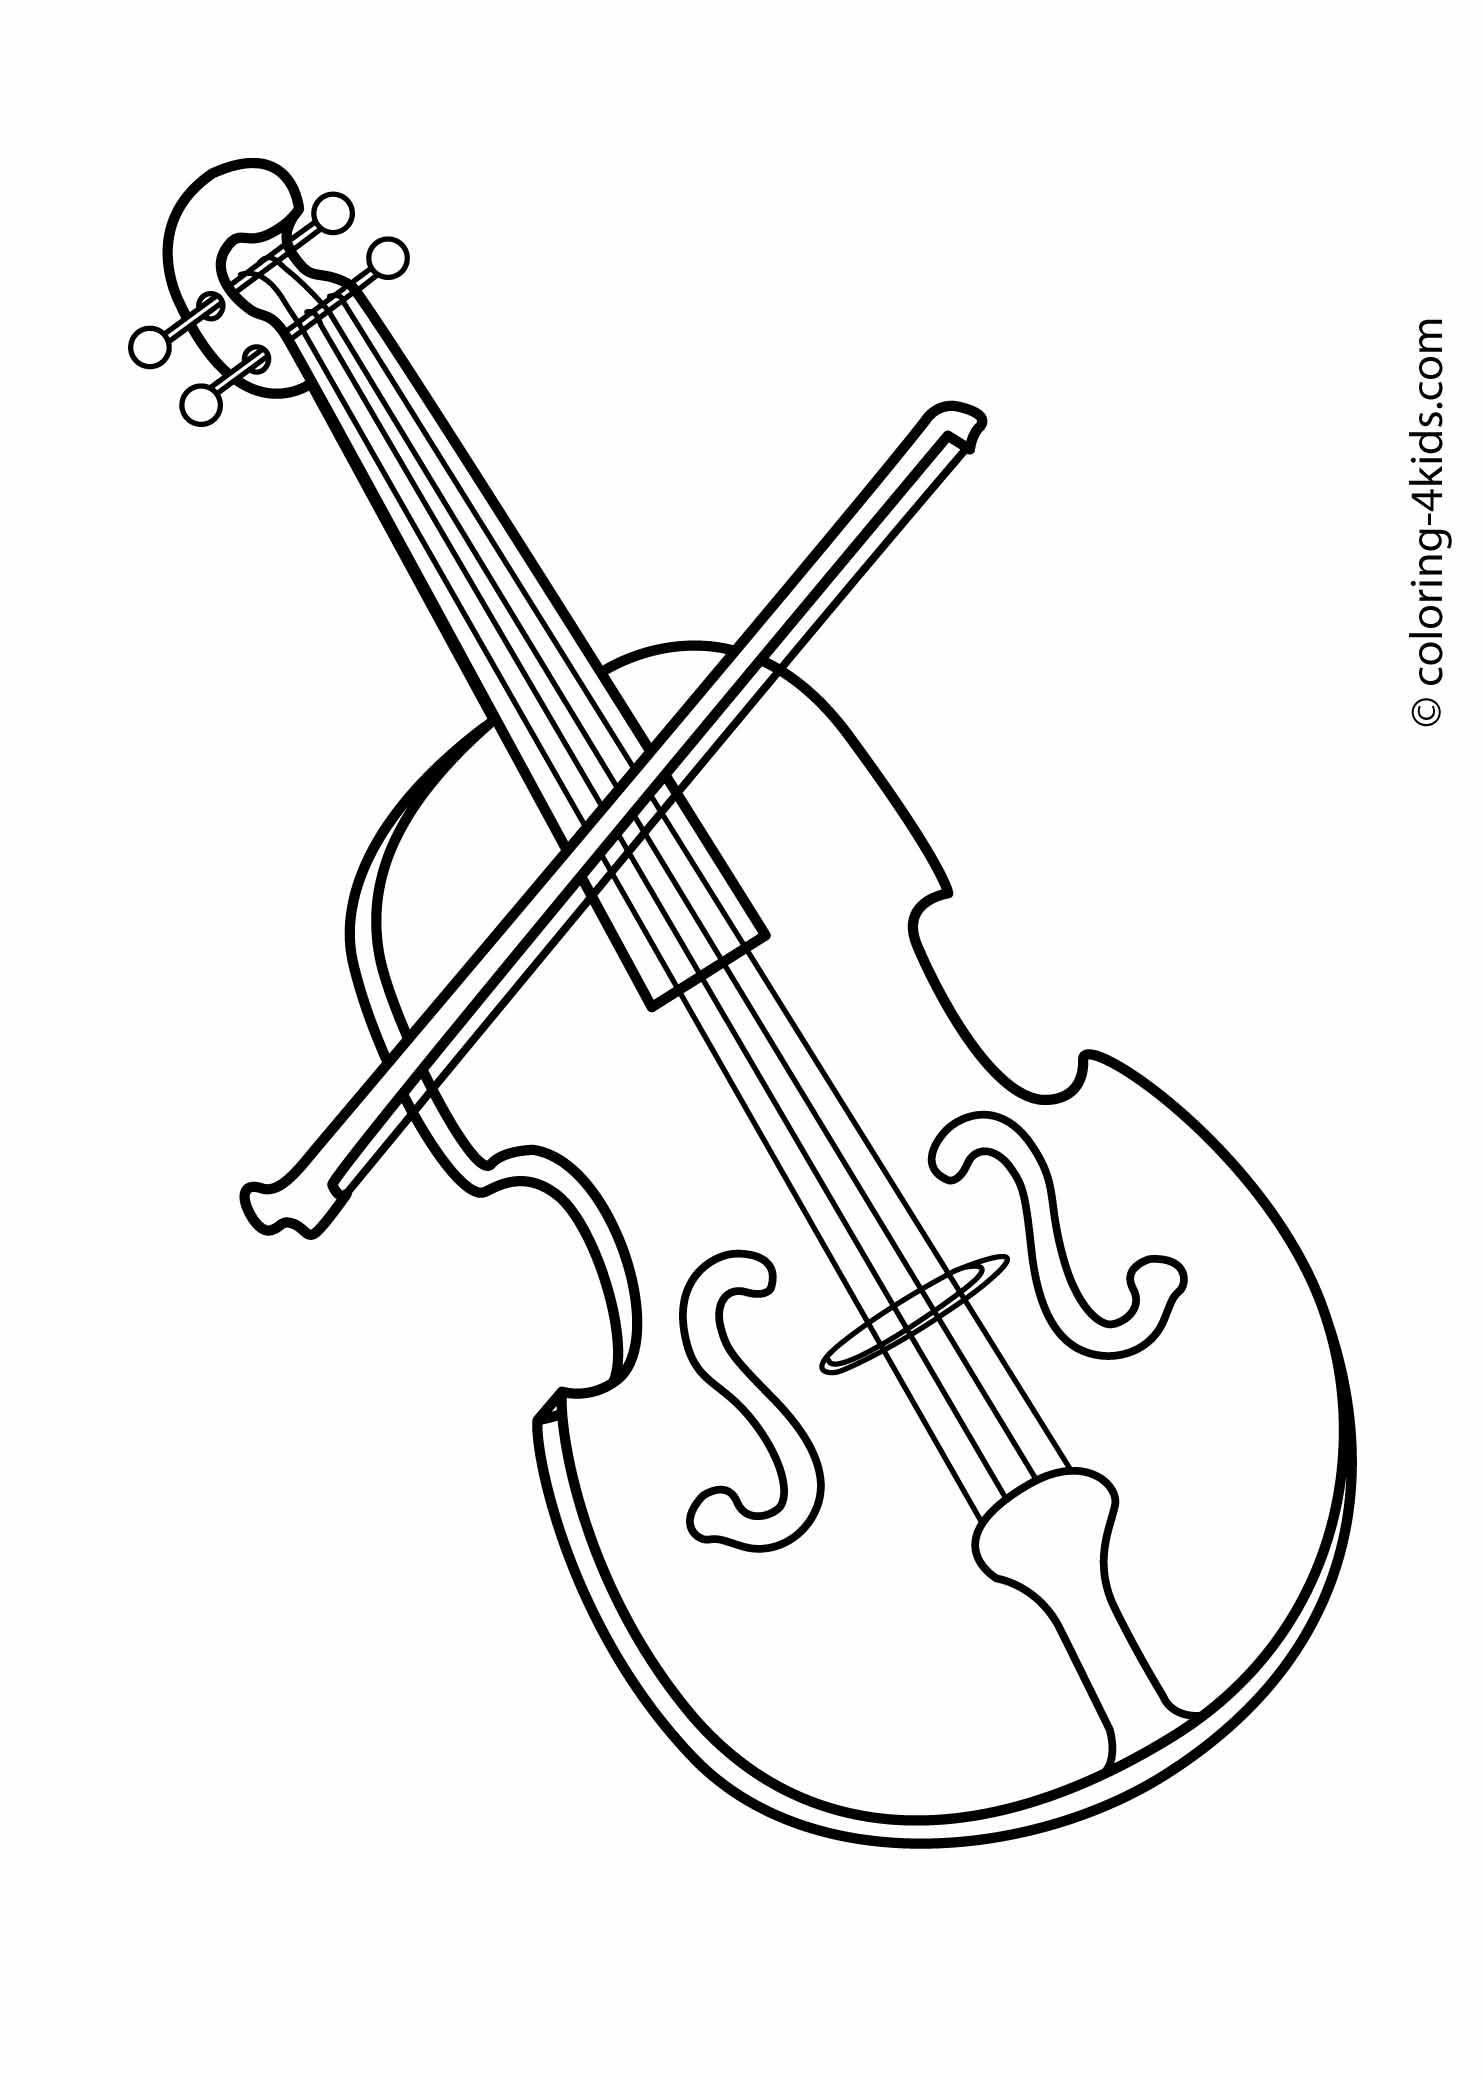 colouring pictures of musical instruments string instrument coloring pages string instrument pictures of instruments colouring musical